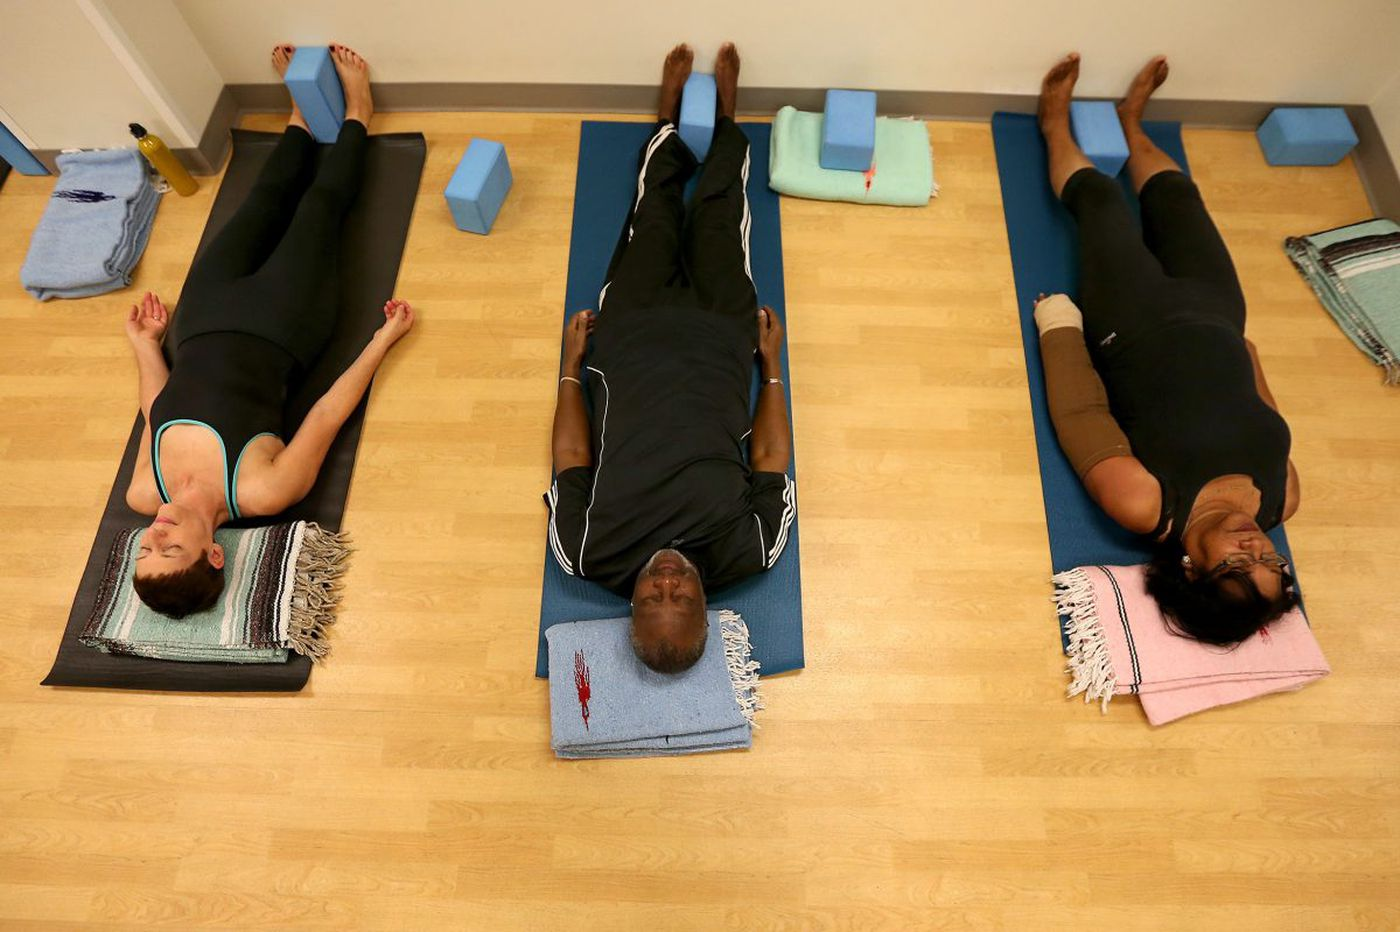 Cancer centers embrace yoga and other alternative therapies to combat patients' pain, fatigue